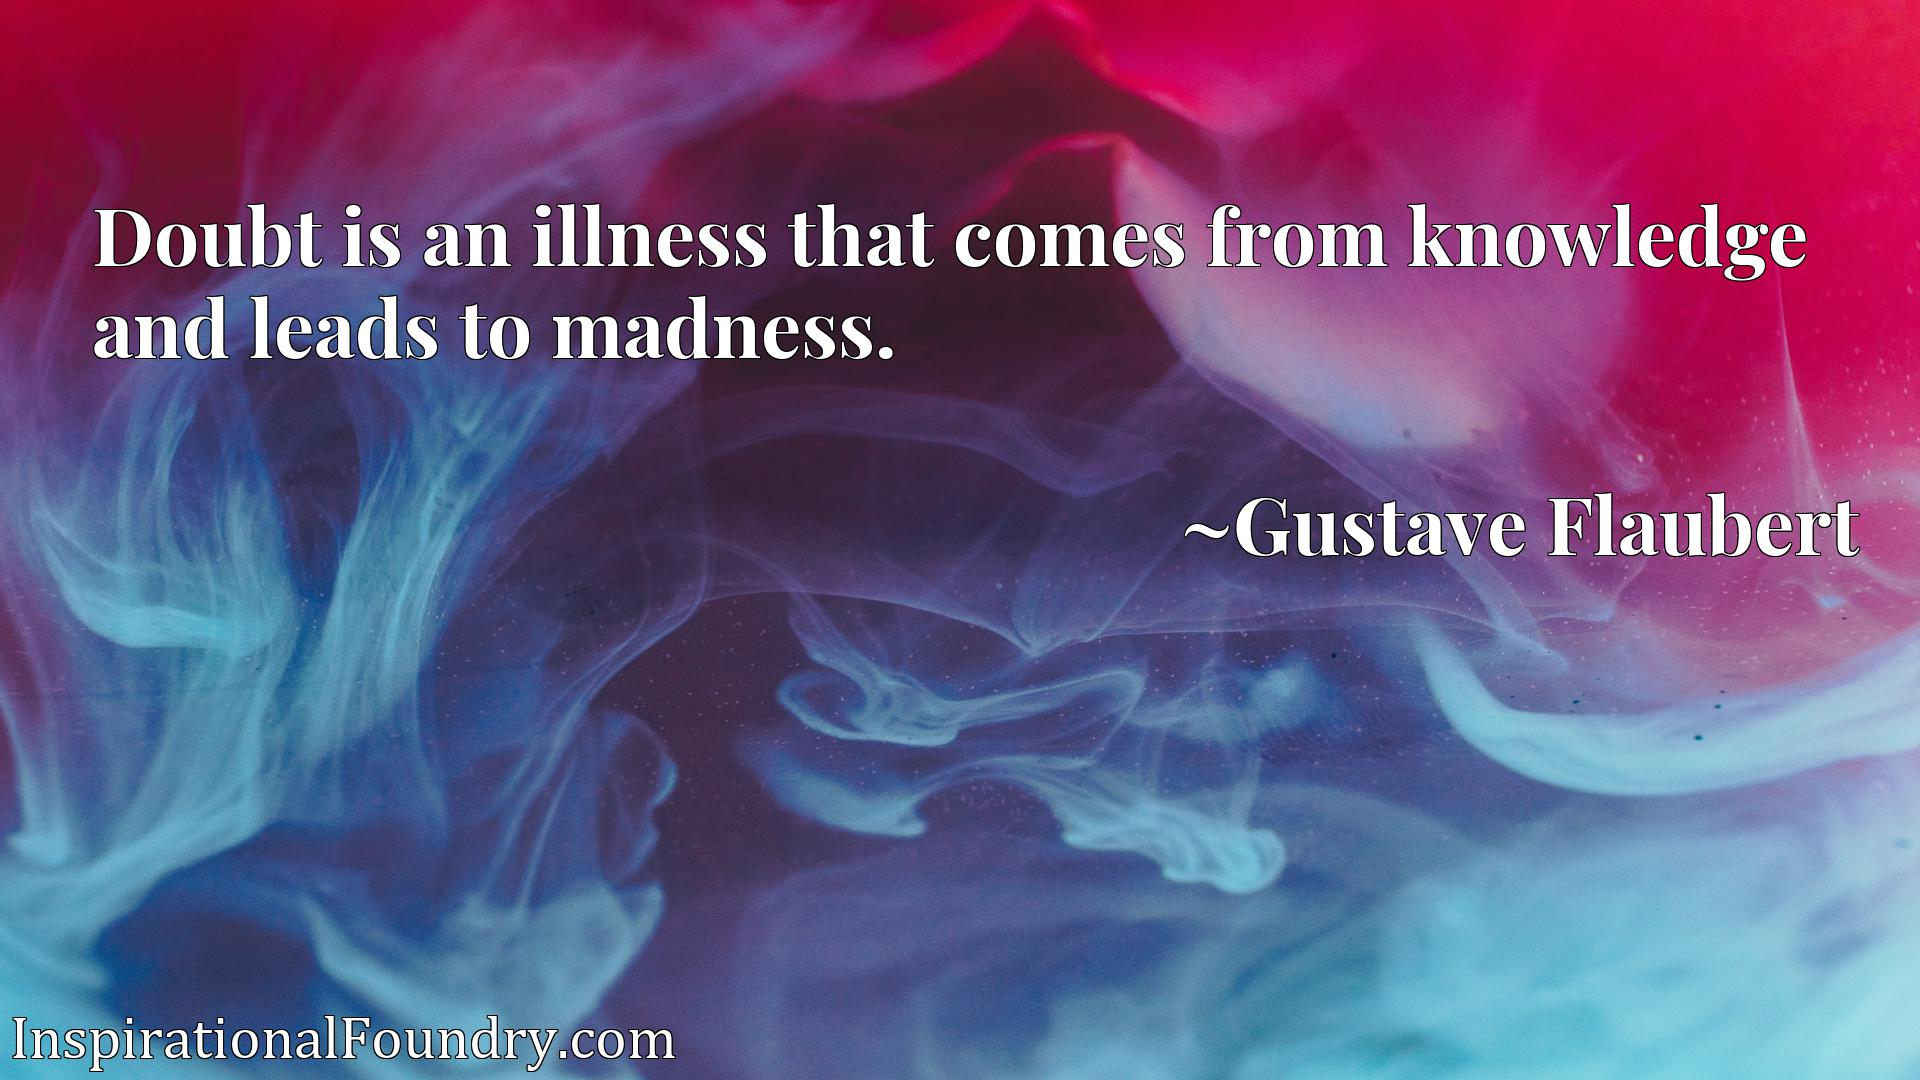 Doubt is an illness that comes from knowledge and leads to madness.